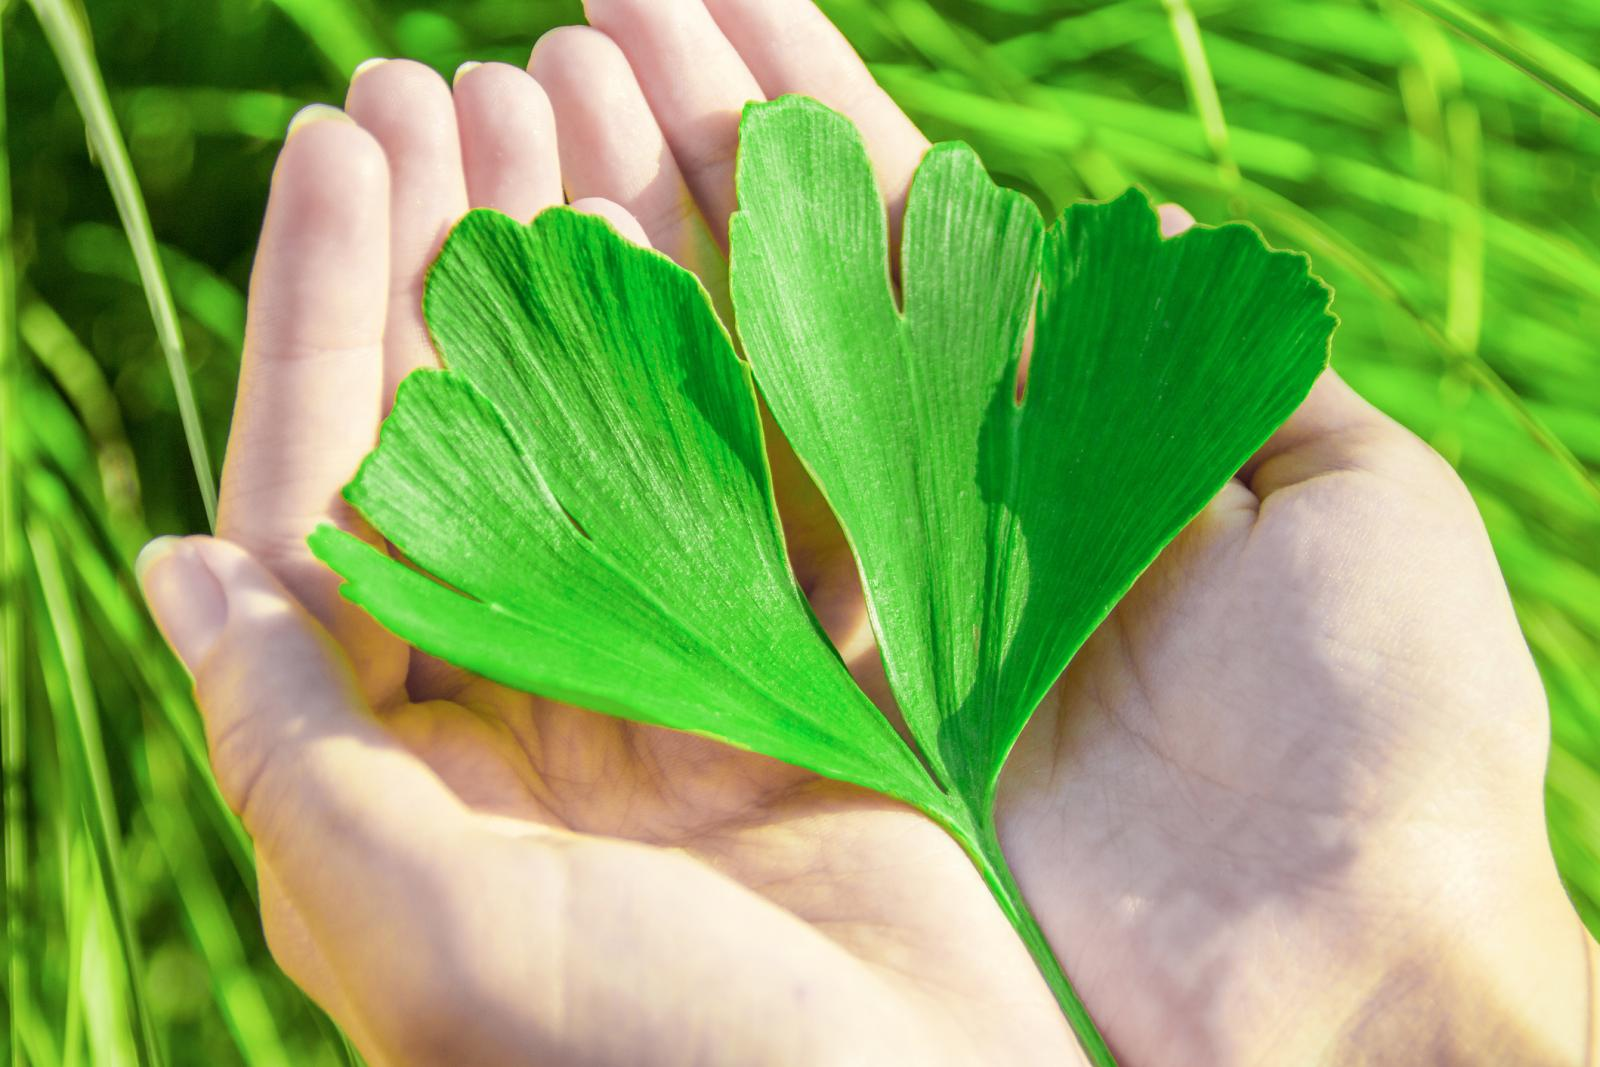 The healing leaf of ginkgo biloba or ginko in the hands of young women